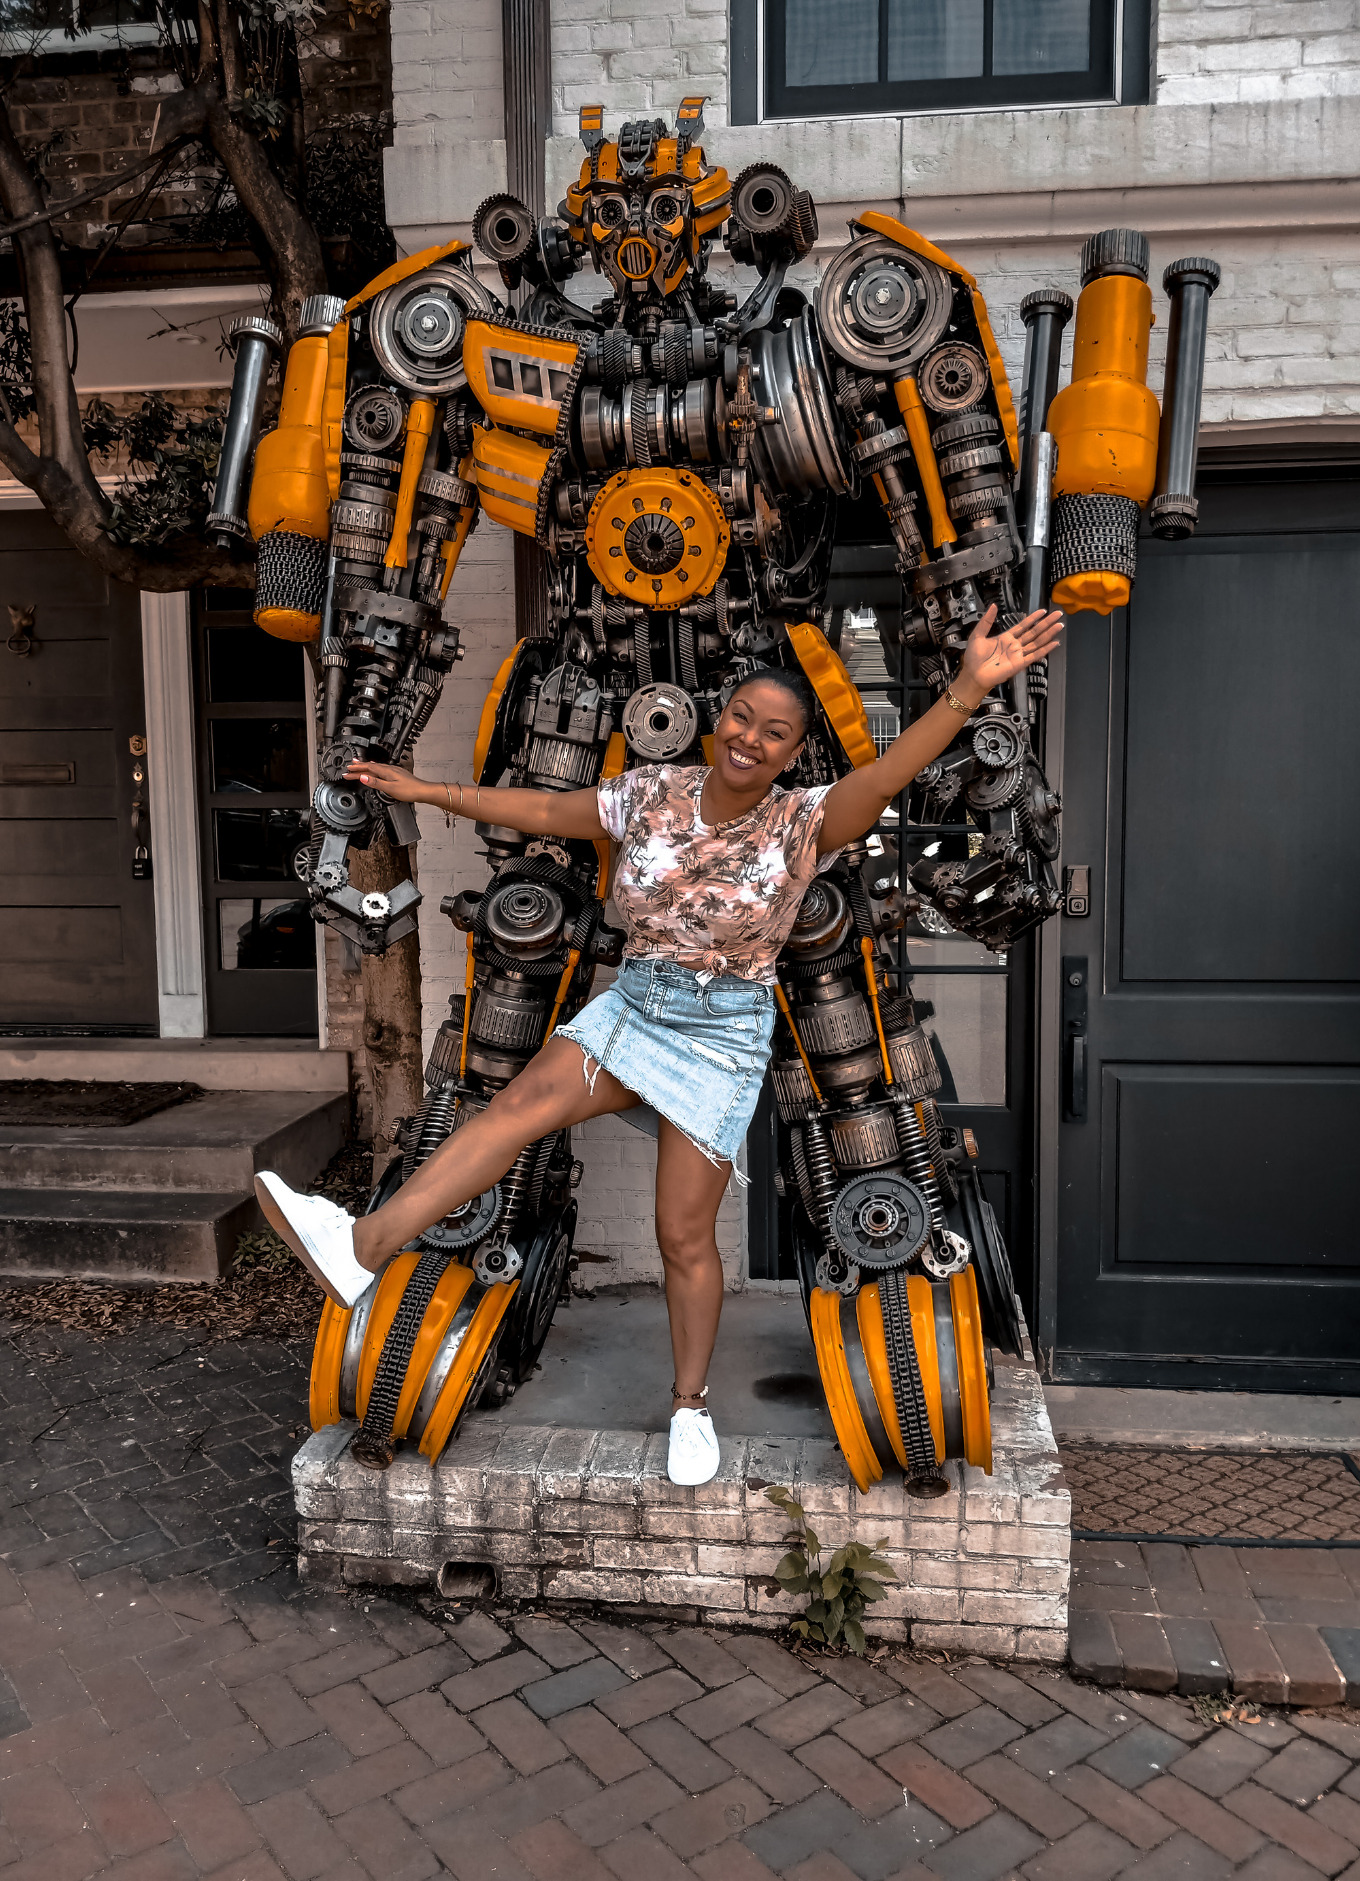 Blogger Rogan Smith smiles and poses in front of the Bumblebee Transformer in Georgetown, DC